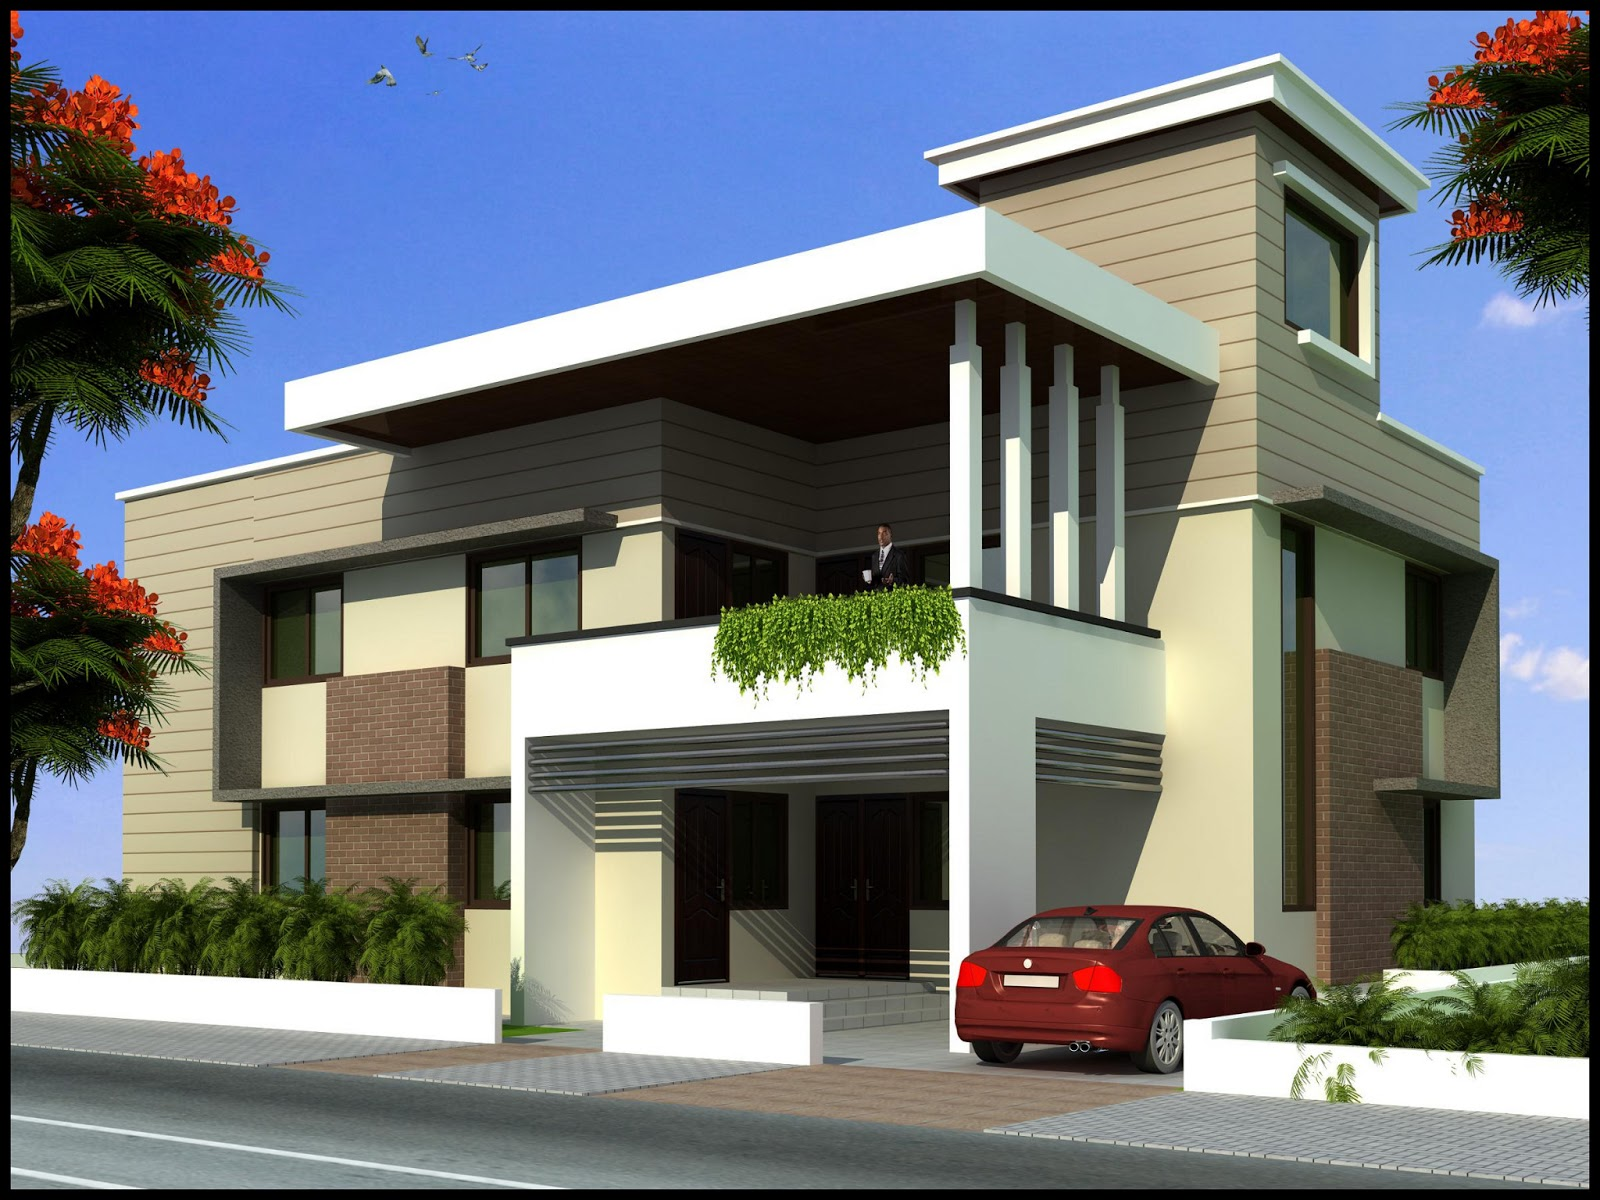 5 Bedrooms Duplex House Design in 357m2 (21m X 17m) ~ Complete ...